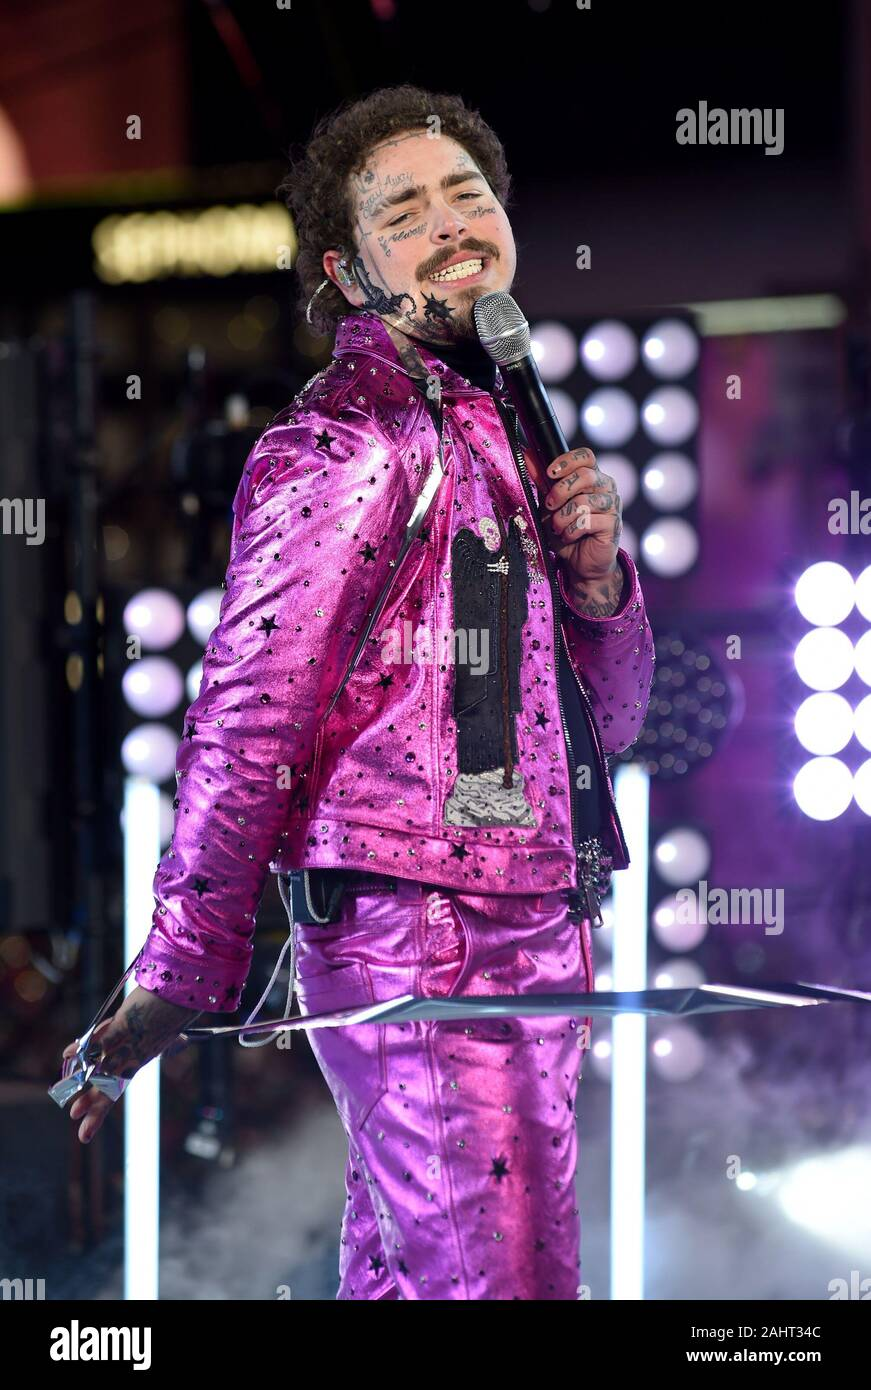 New York Ny Usa 31st Dec 2019 Post Malone In Attendance For Times Square New Year S